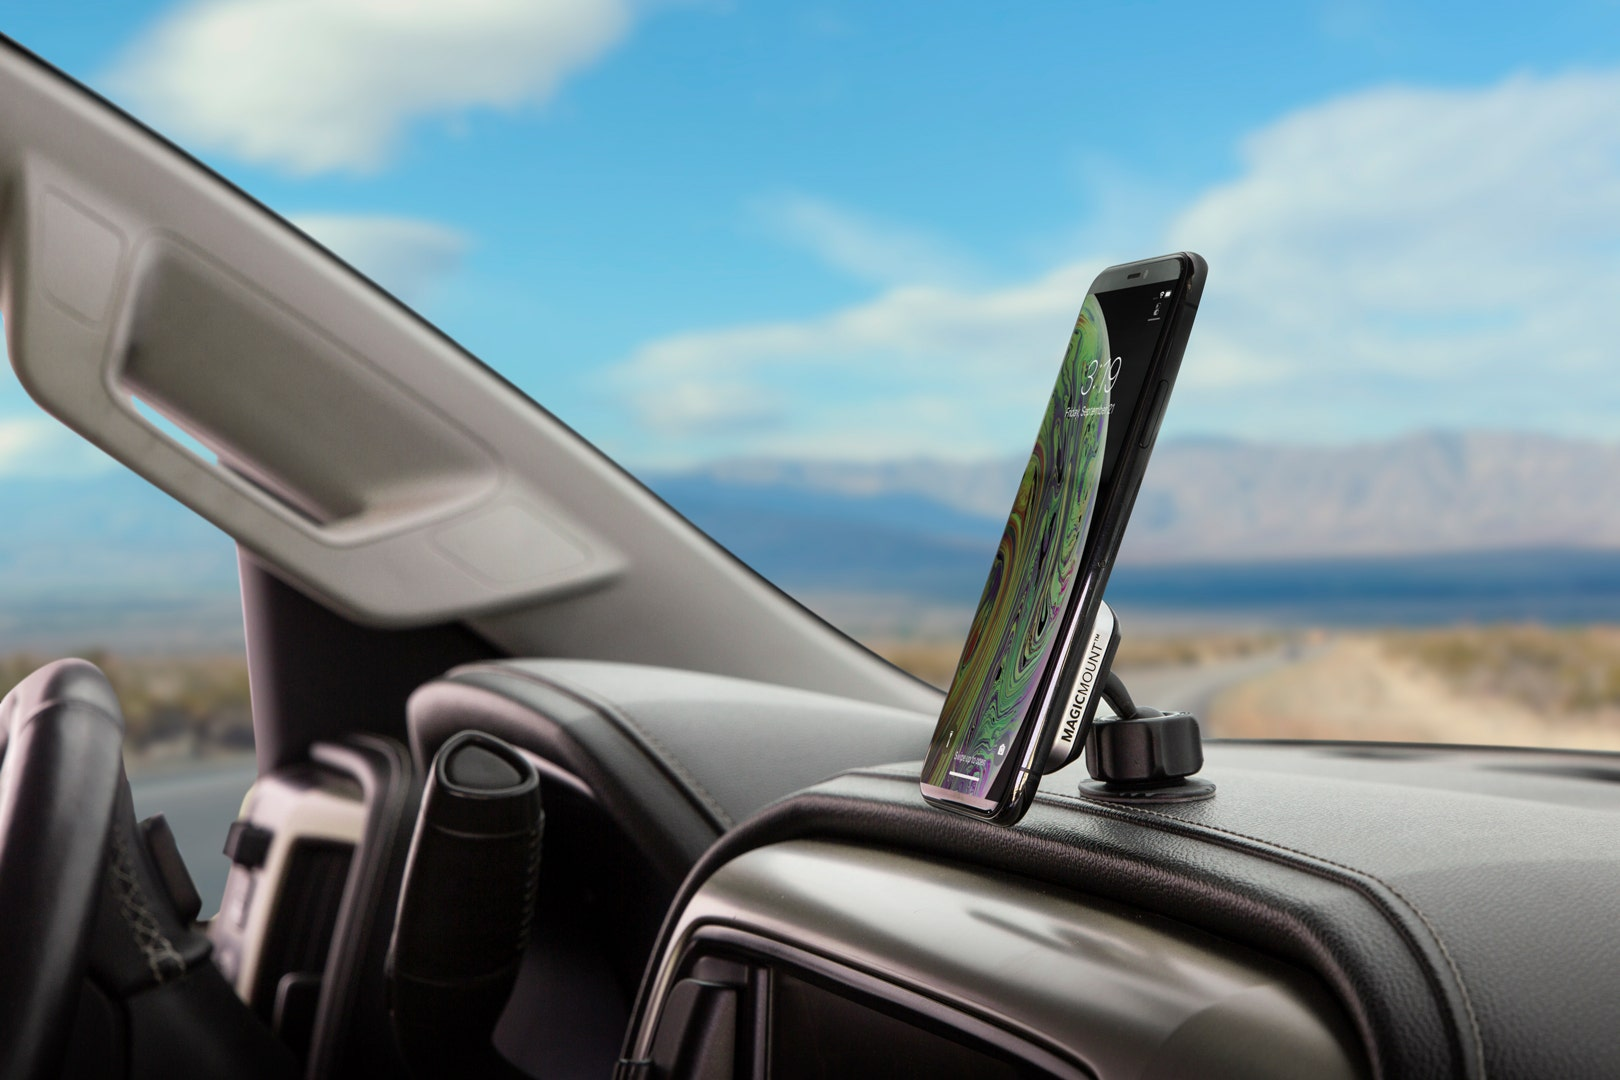 Best Car Phone Mounts for 2019